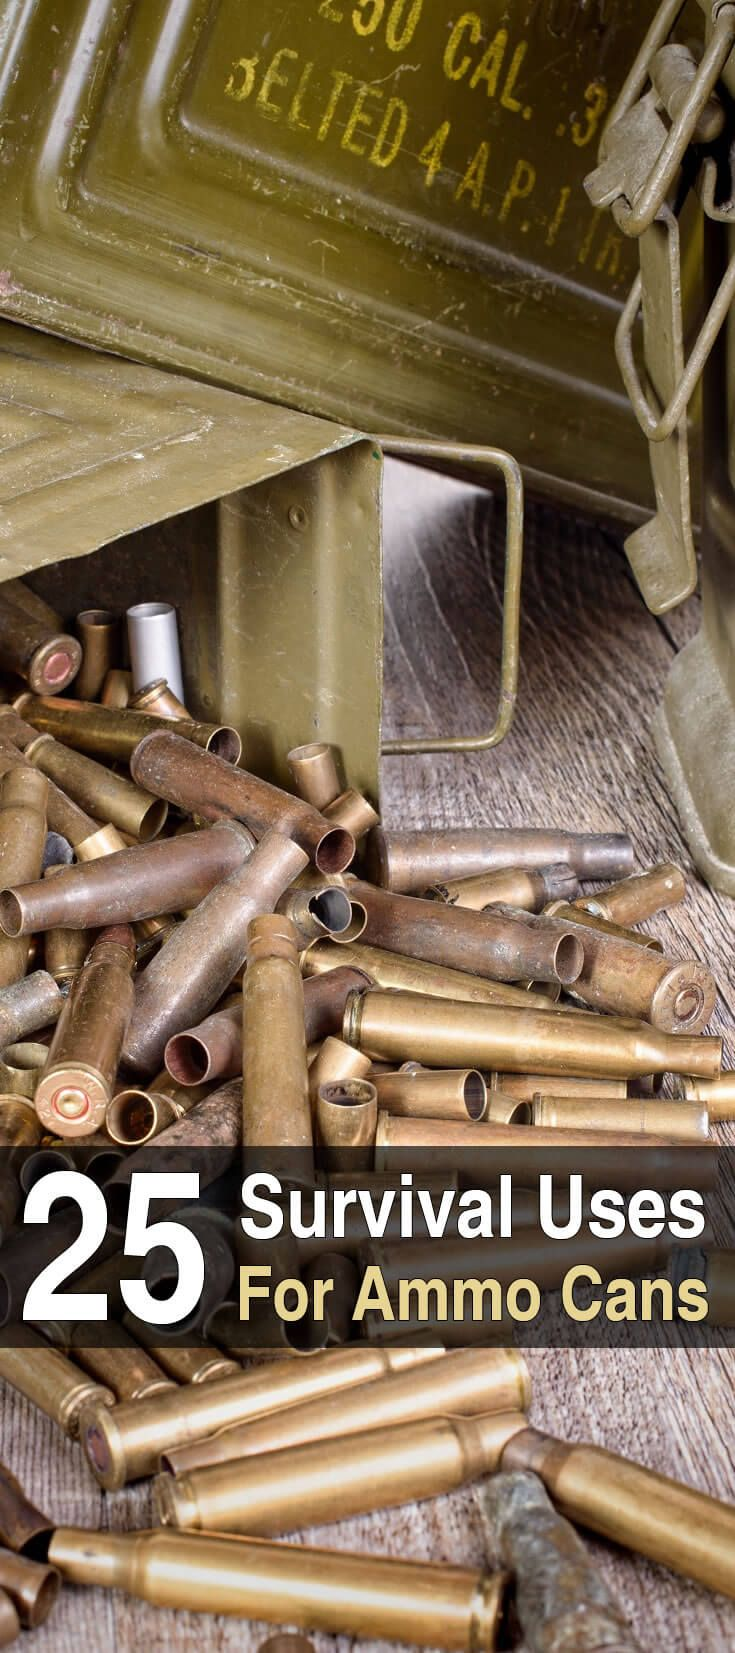 25 Survival Uses for Ammo Cans. Watch this video for 25 uses for ammo cans. #AmmoCans